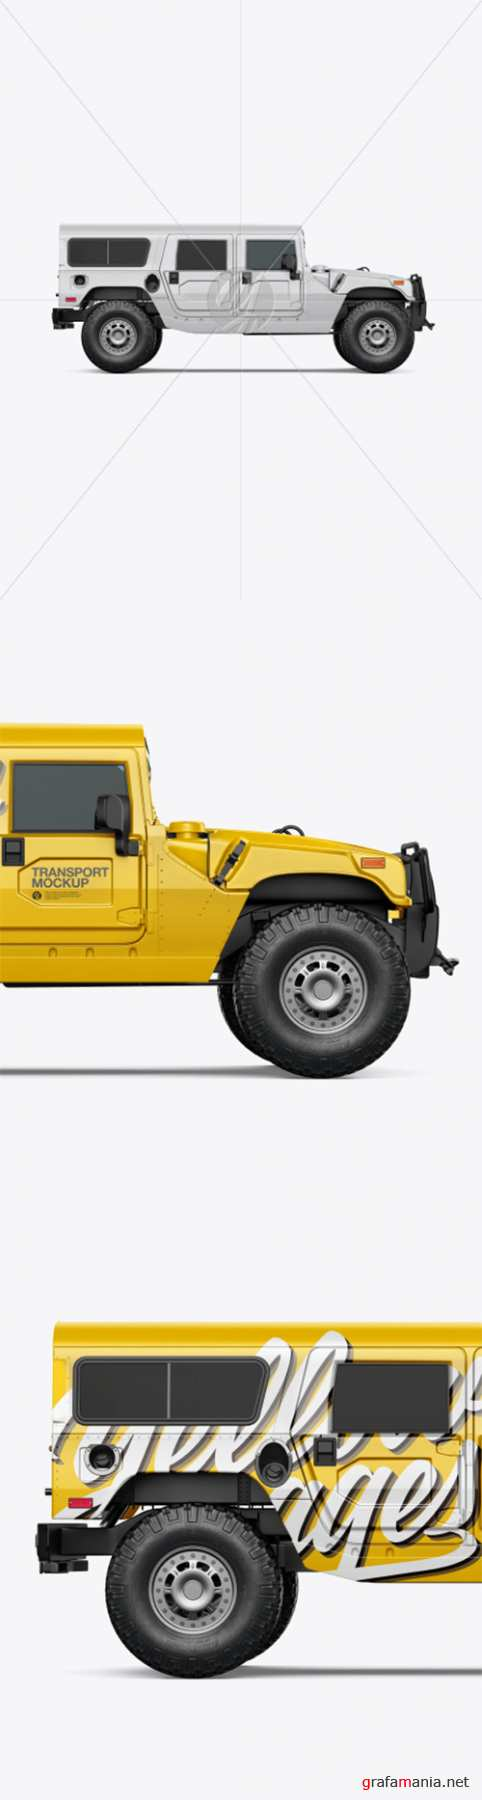 Off-Road SUV Mockup - Side View 55232